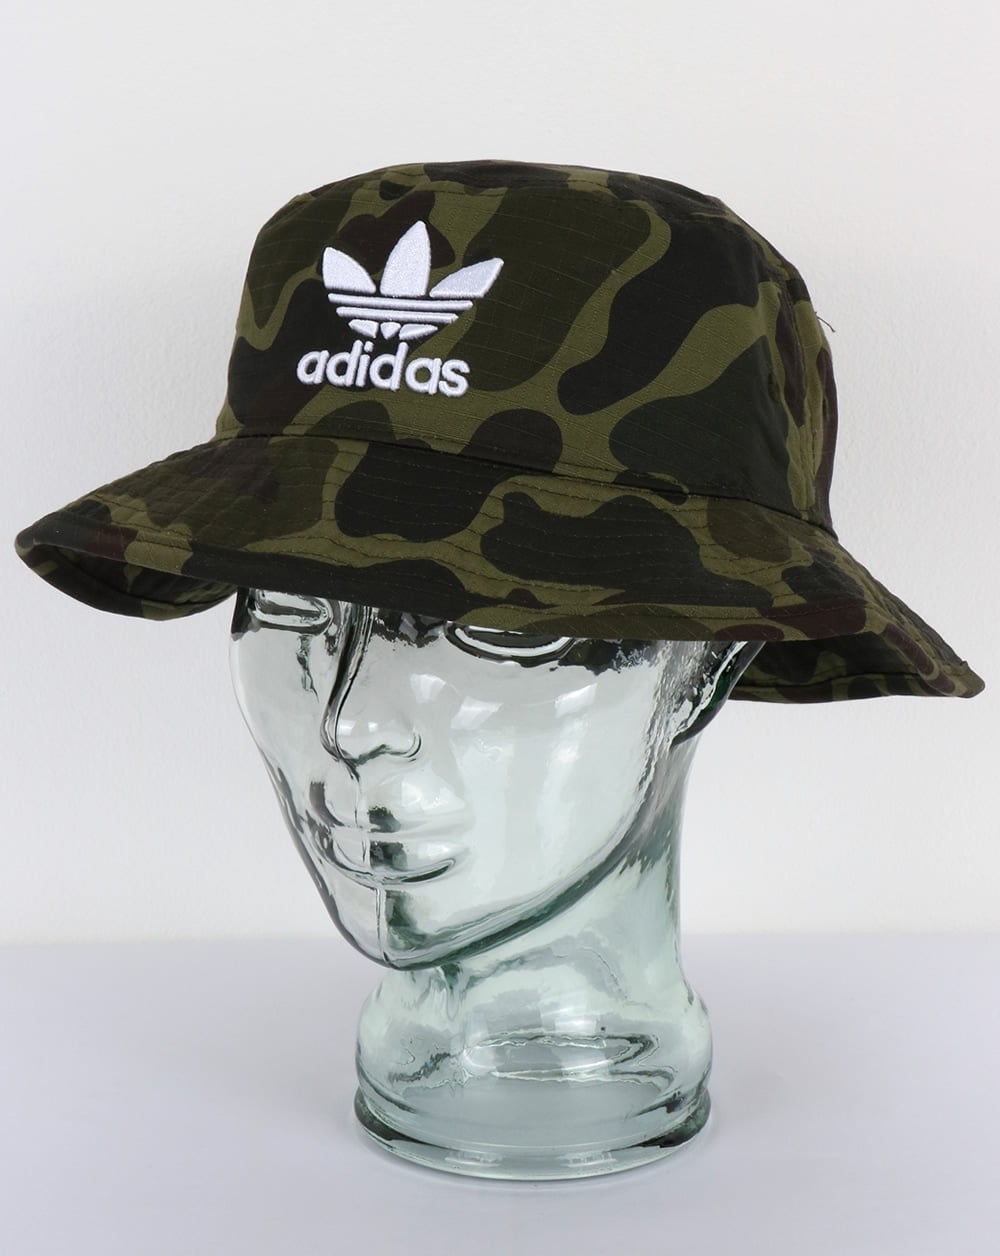 adidas Originals Adidas Originals Bucket Hat Camo 0d3a87f4be8